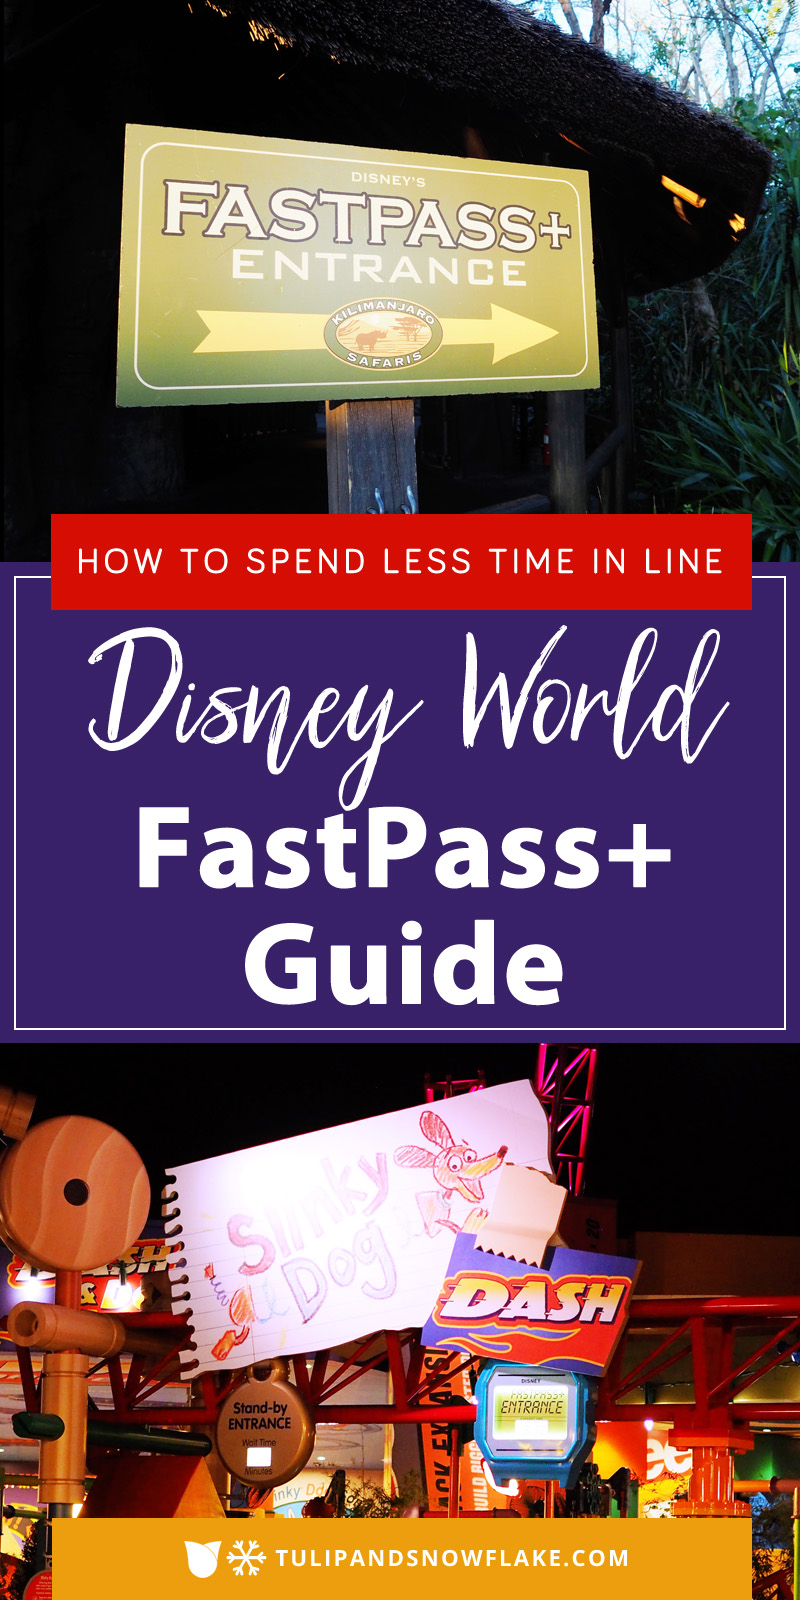 Disney World Fastpass Guide